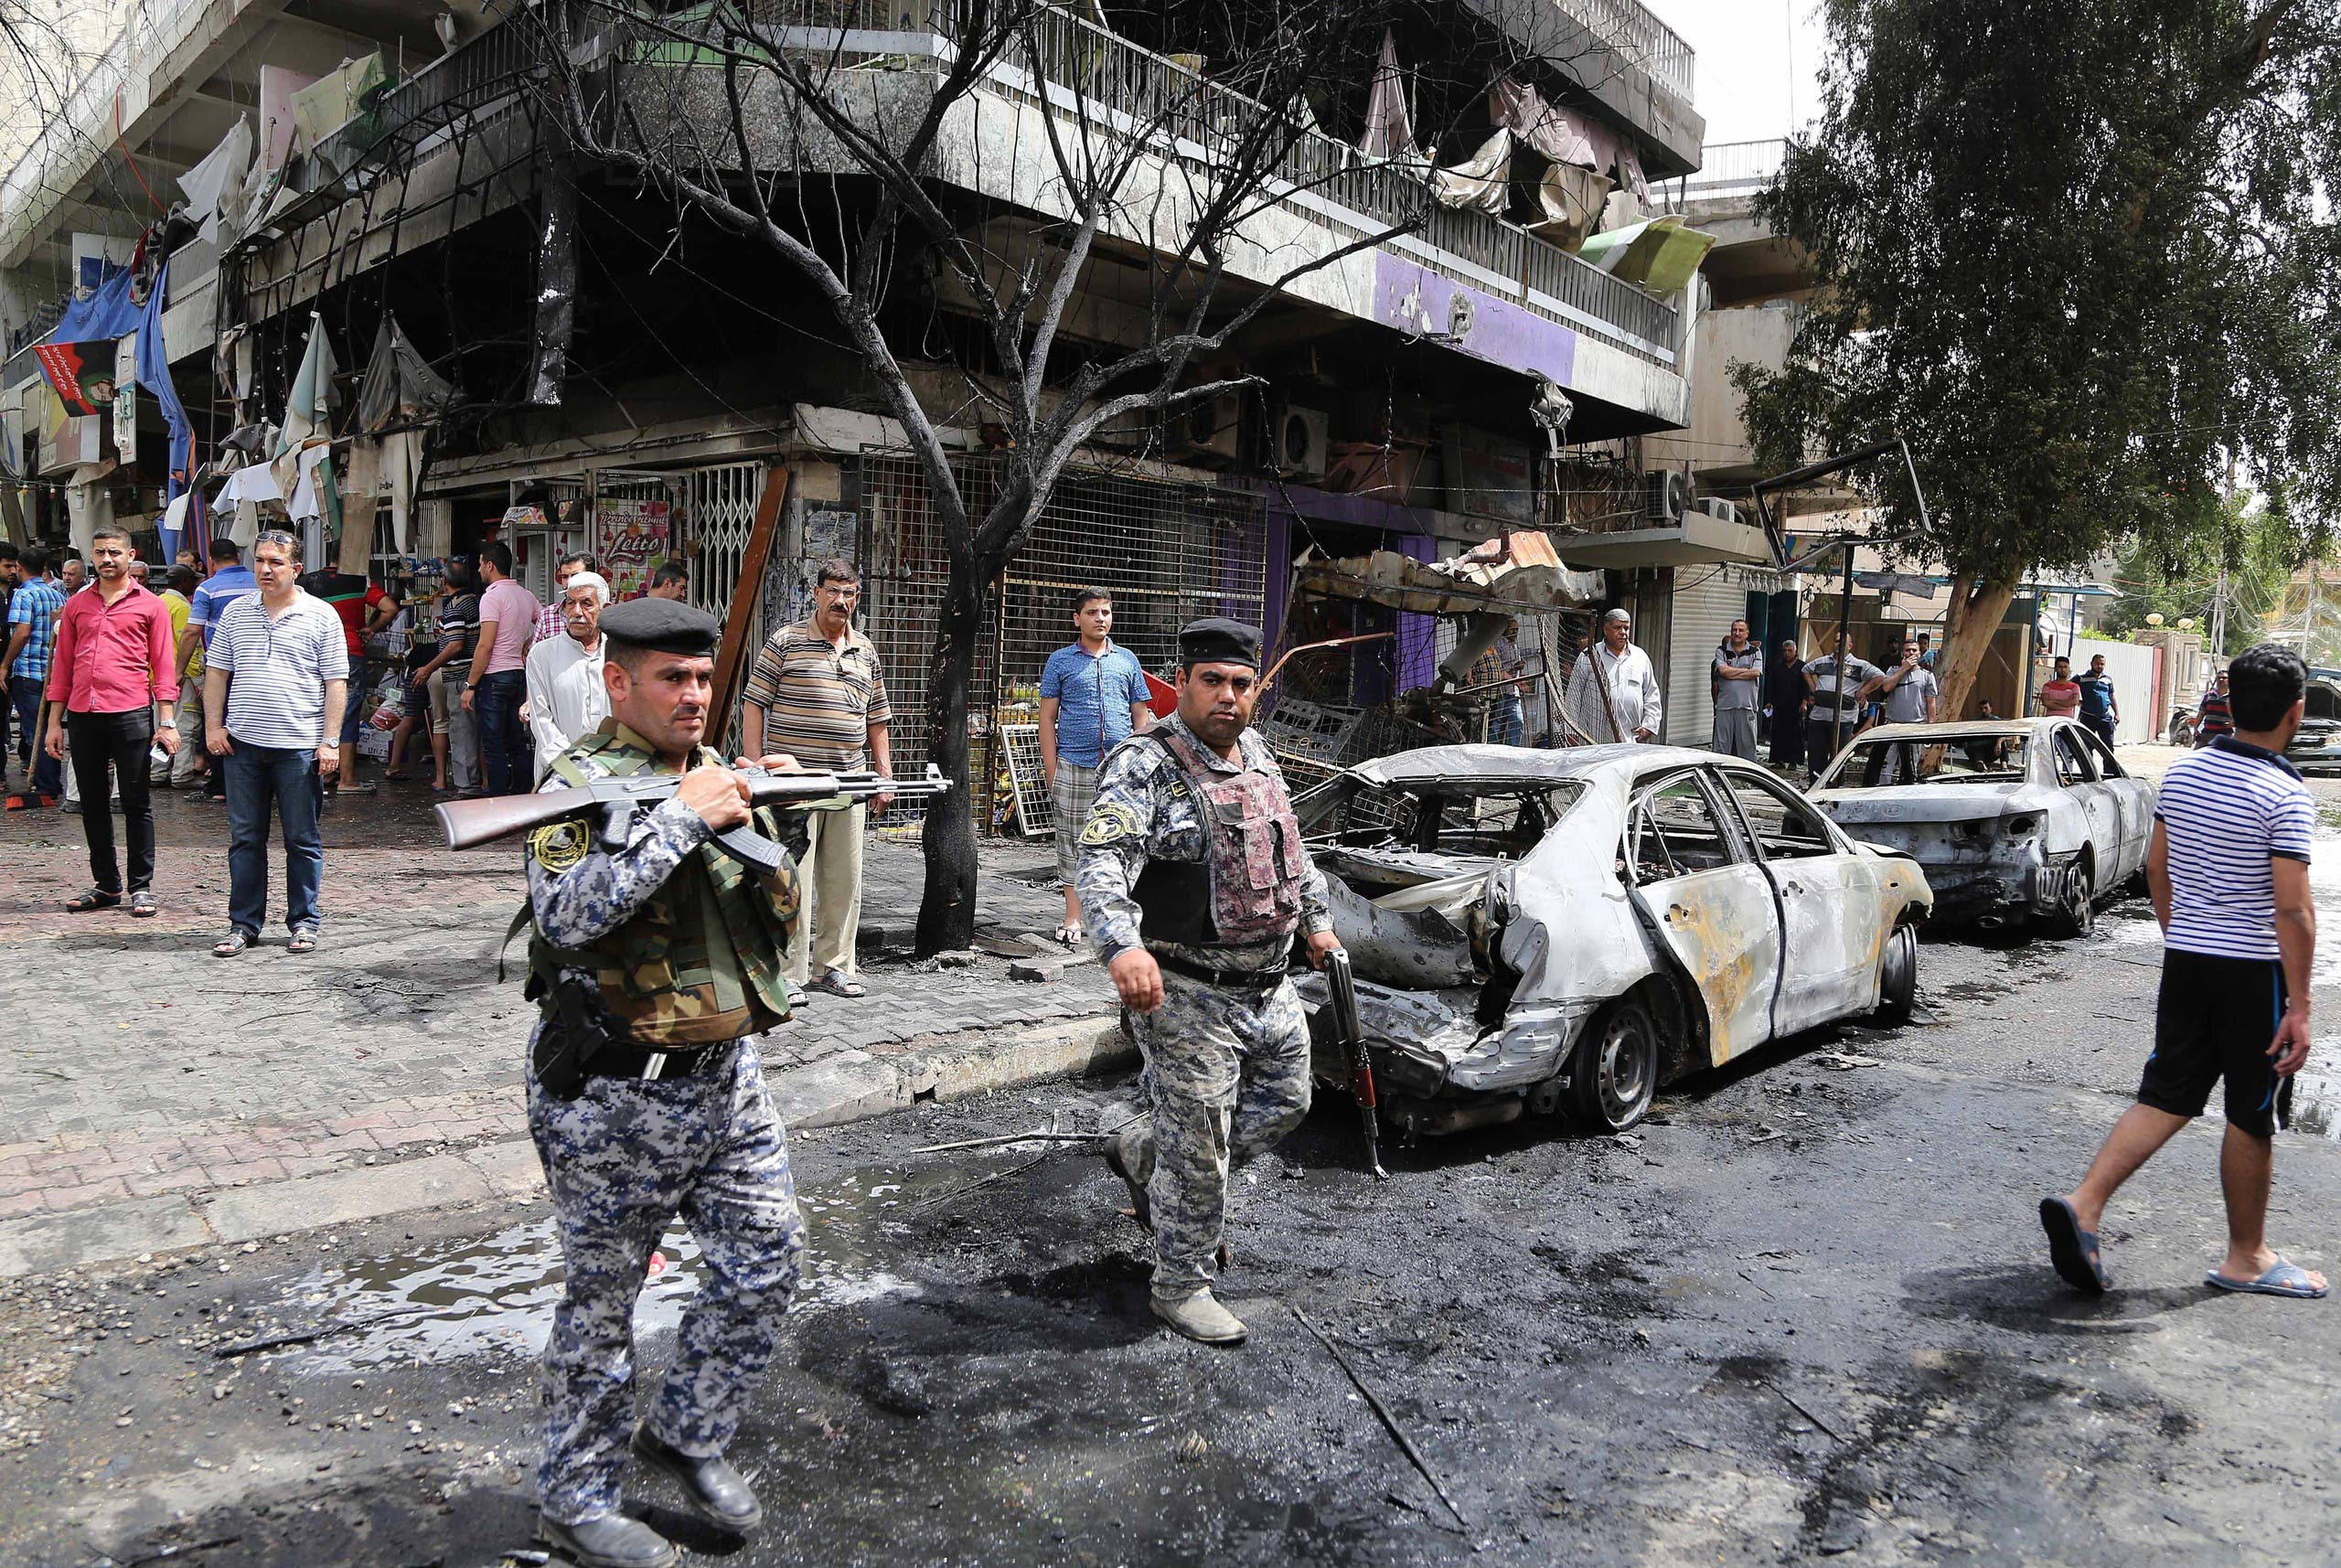 People and security forces gather at the site of a car bomb explosion at a convenience store in the Karrada neighborhood of Baghdad, Iraq. (File photo: AP)